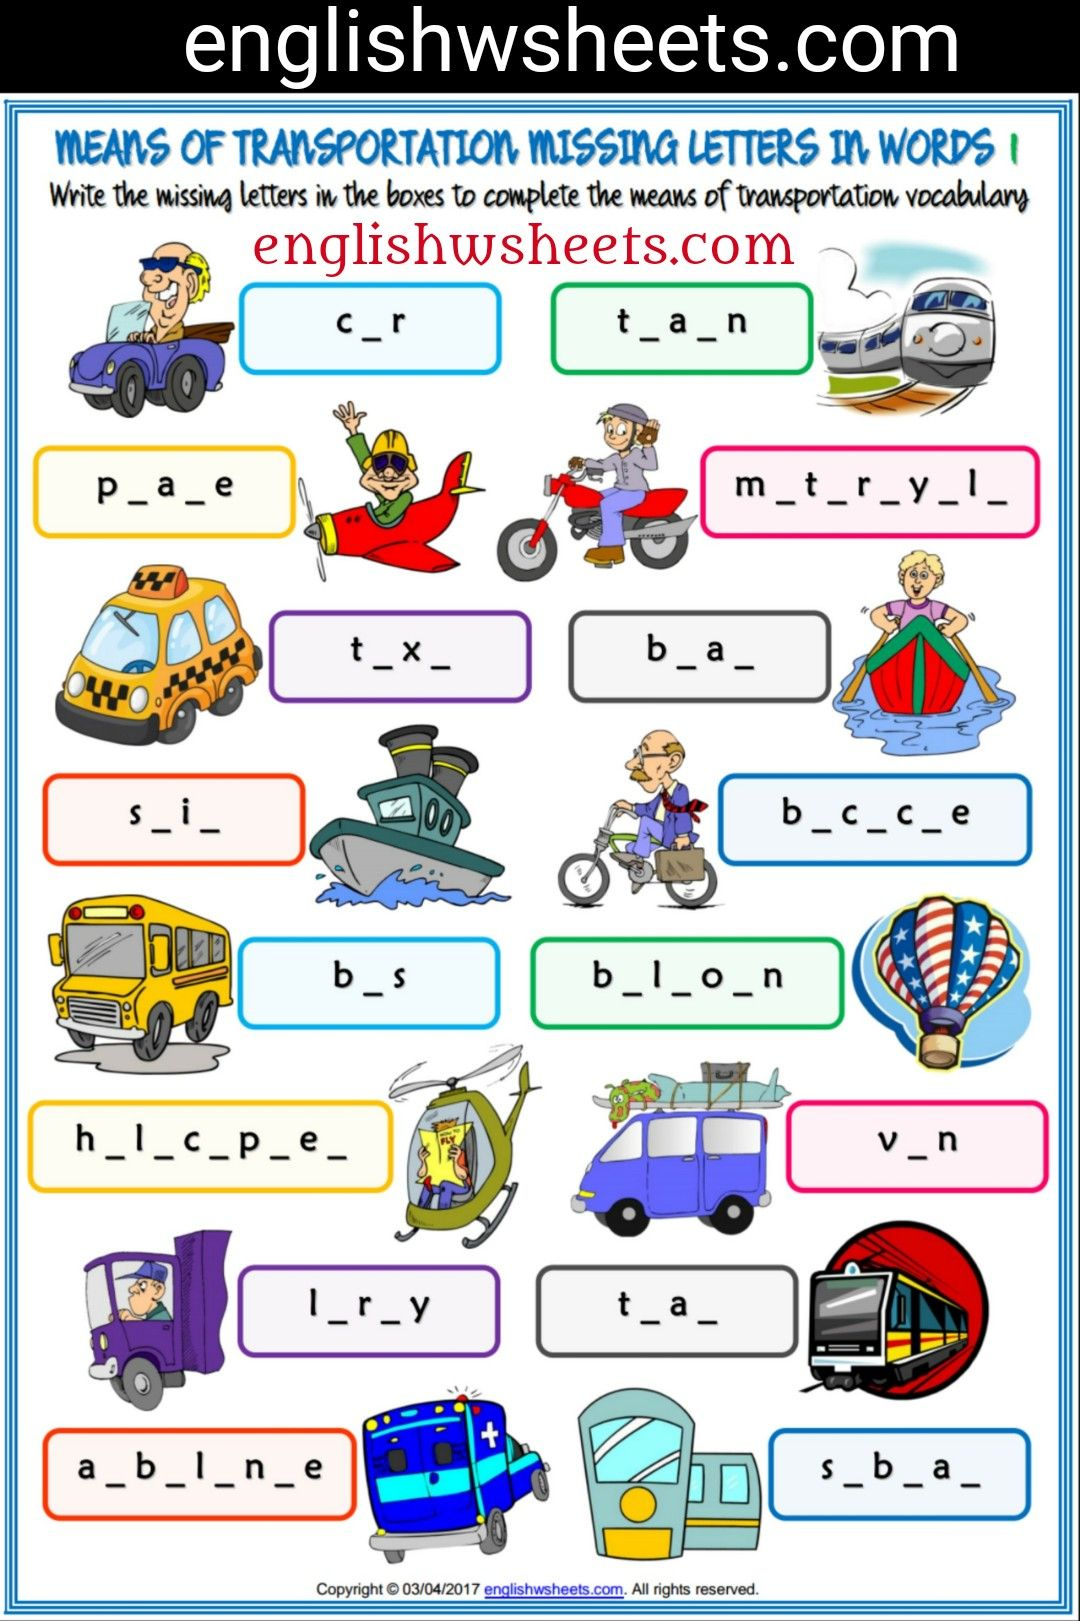 means of transportation esl printable missing letters in words worksheet for kids means. Black Bedroom Furniture Sets. Home Design Ideas